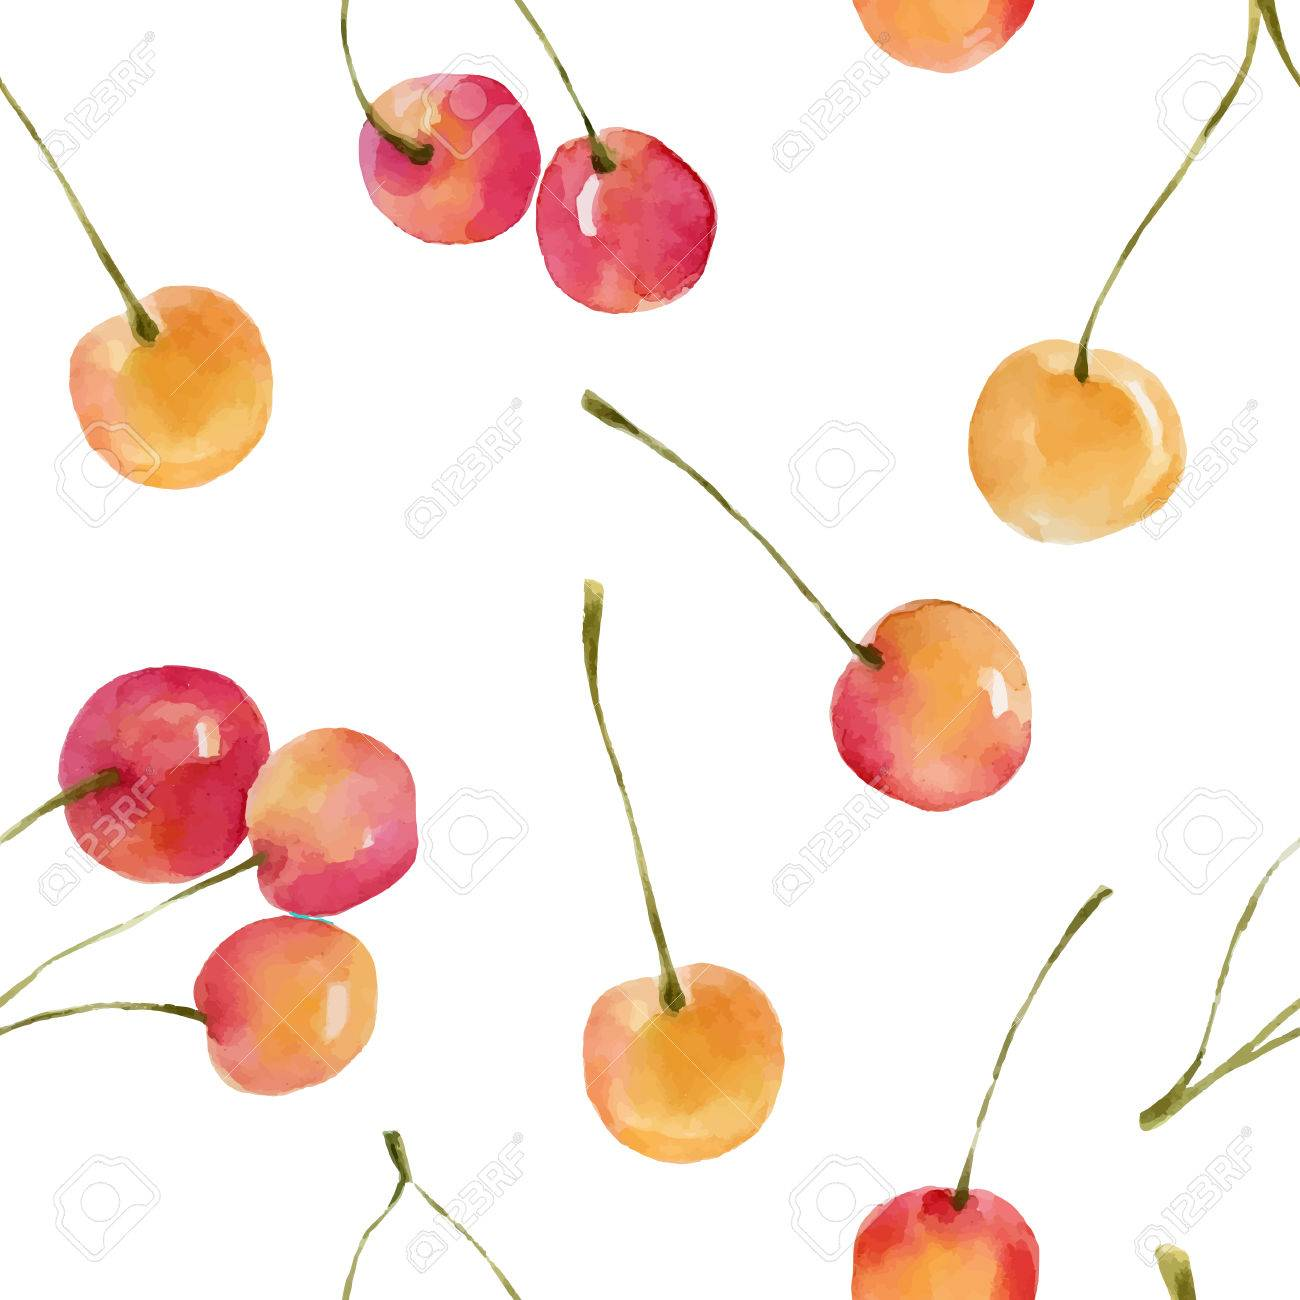 Watercolor cherries isolated on white background. Organic food illustration. - 63721052